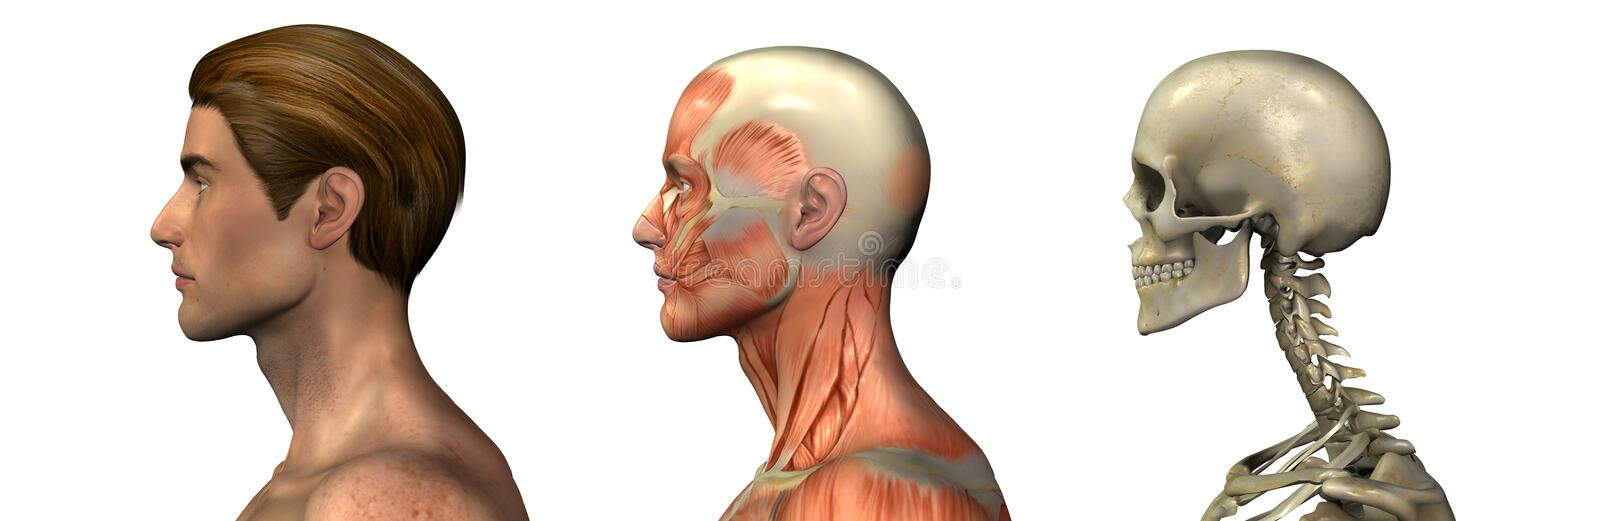 Anatomical Overlays - Male - Head and Shoulders - profile royalty free illustration